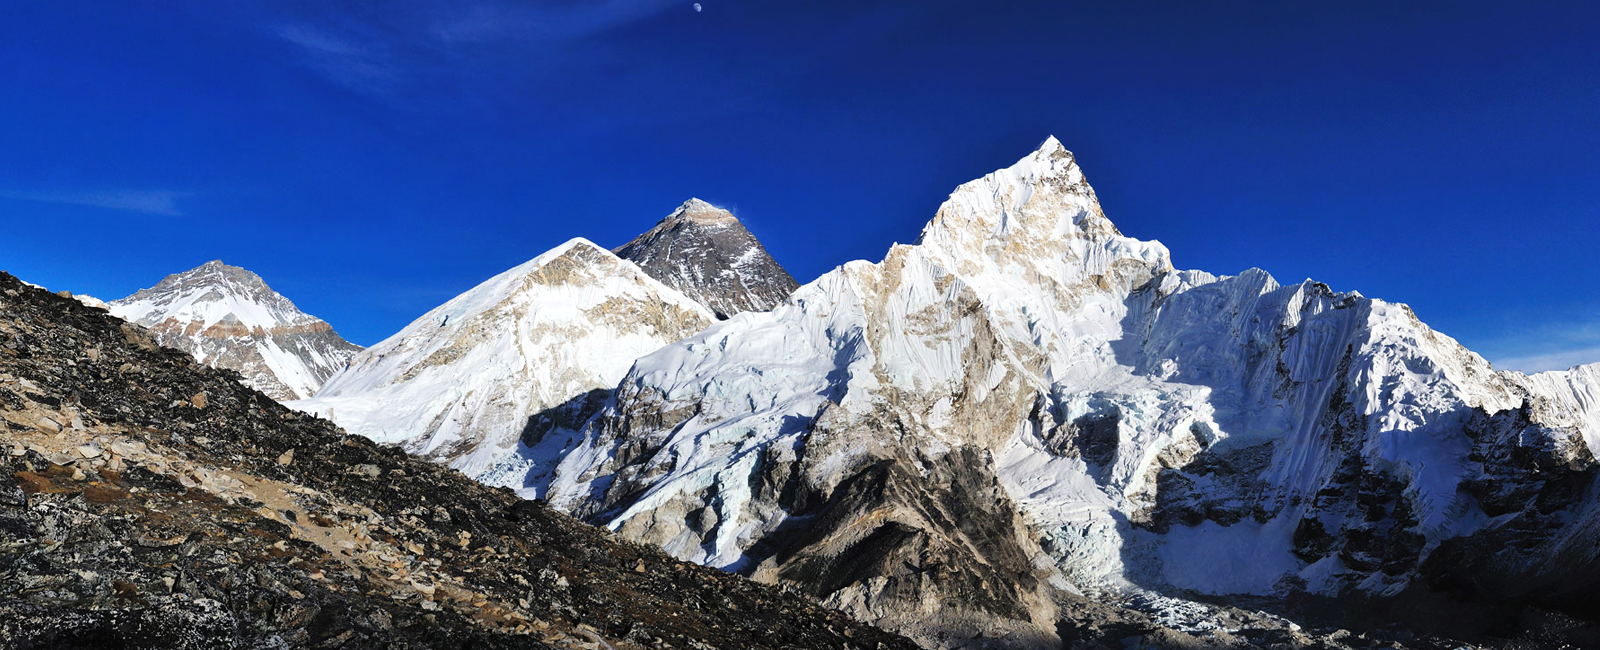 Everest Base Camp Trek Packages